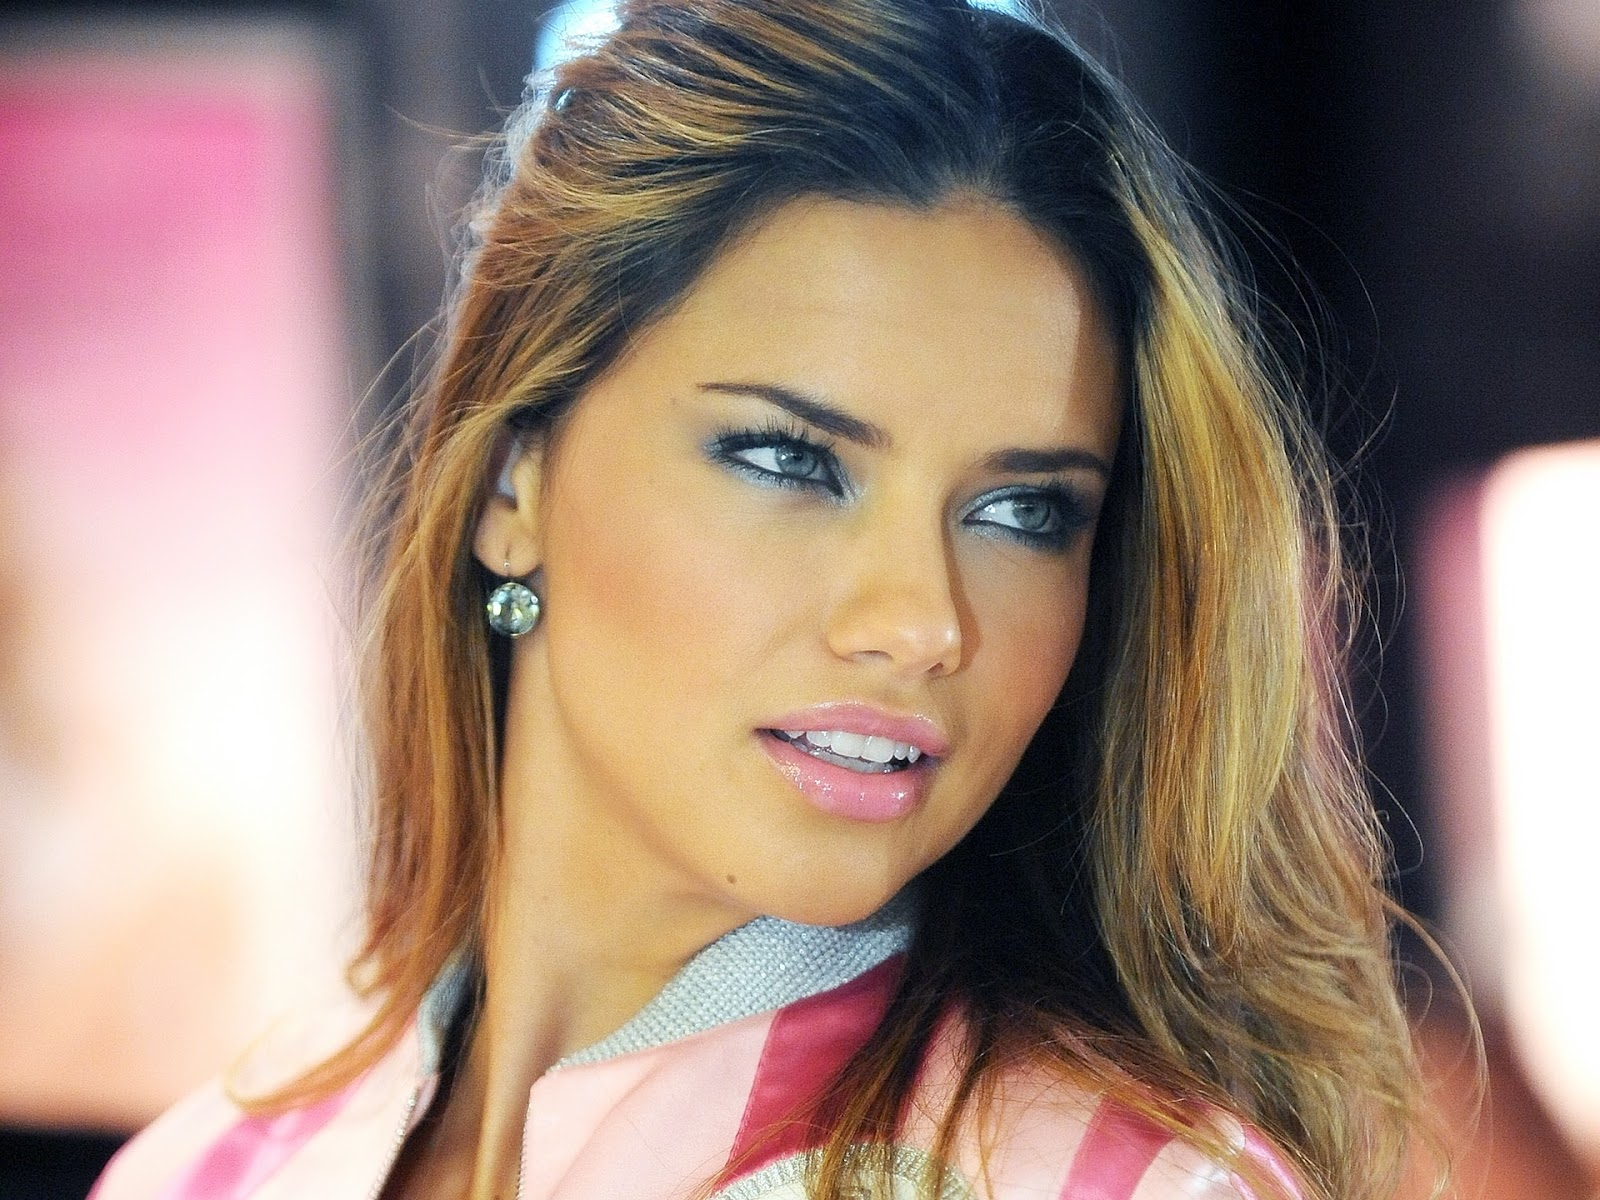 The Best Top Desktop Adriana Lima Wallpapers In All Kind Of Resolutions And Sizes For Your PC Windows XP Vista 7 Mac OS